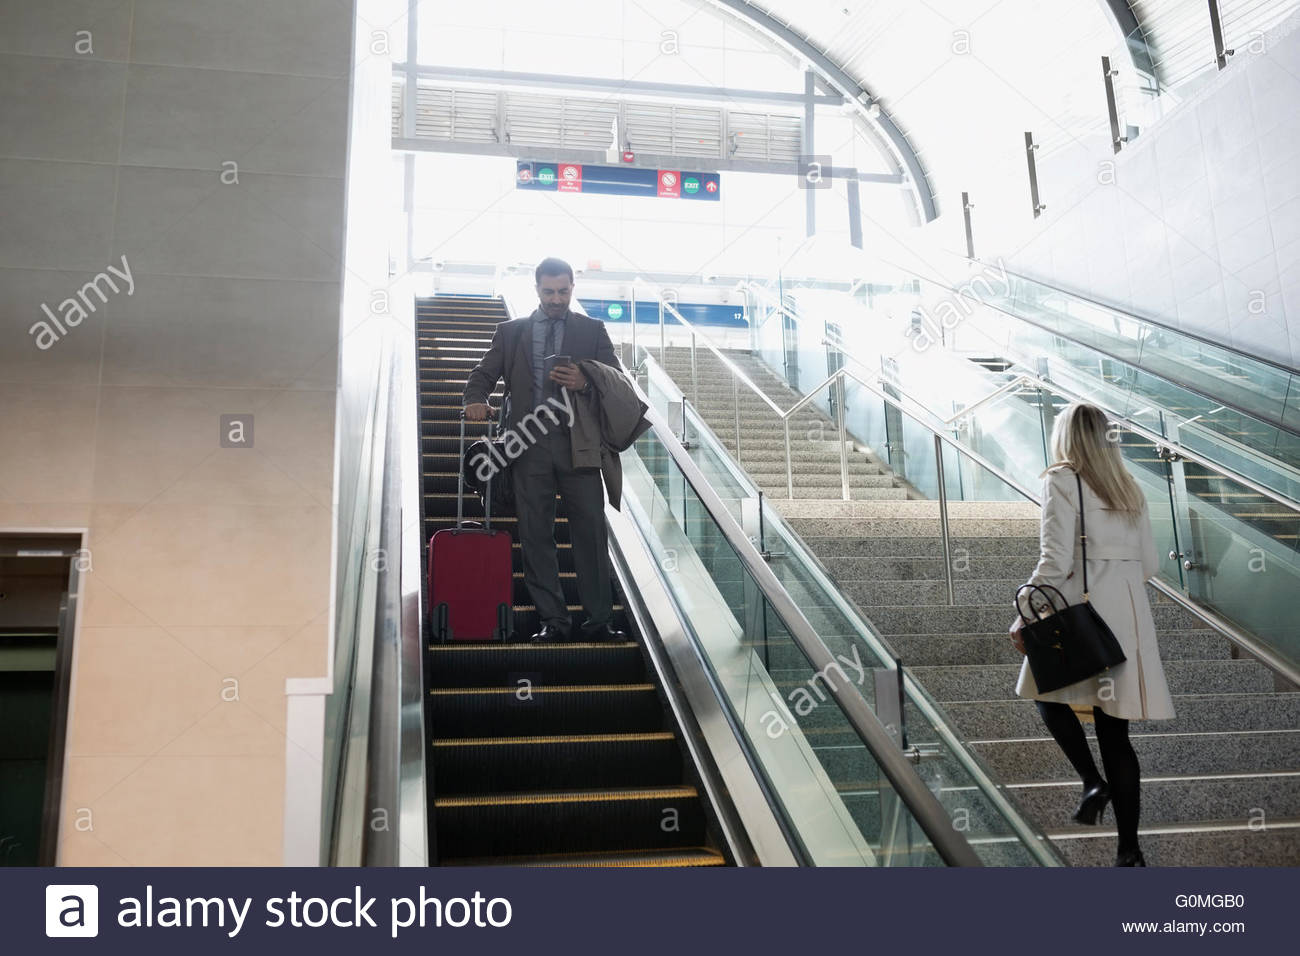 Businessman with suitcase descending escalator at train station - Stock Image